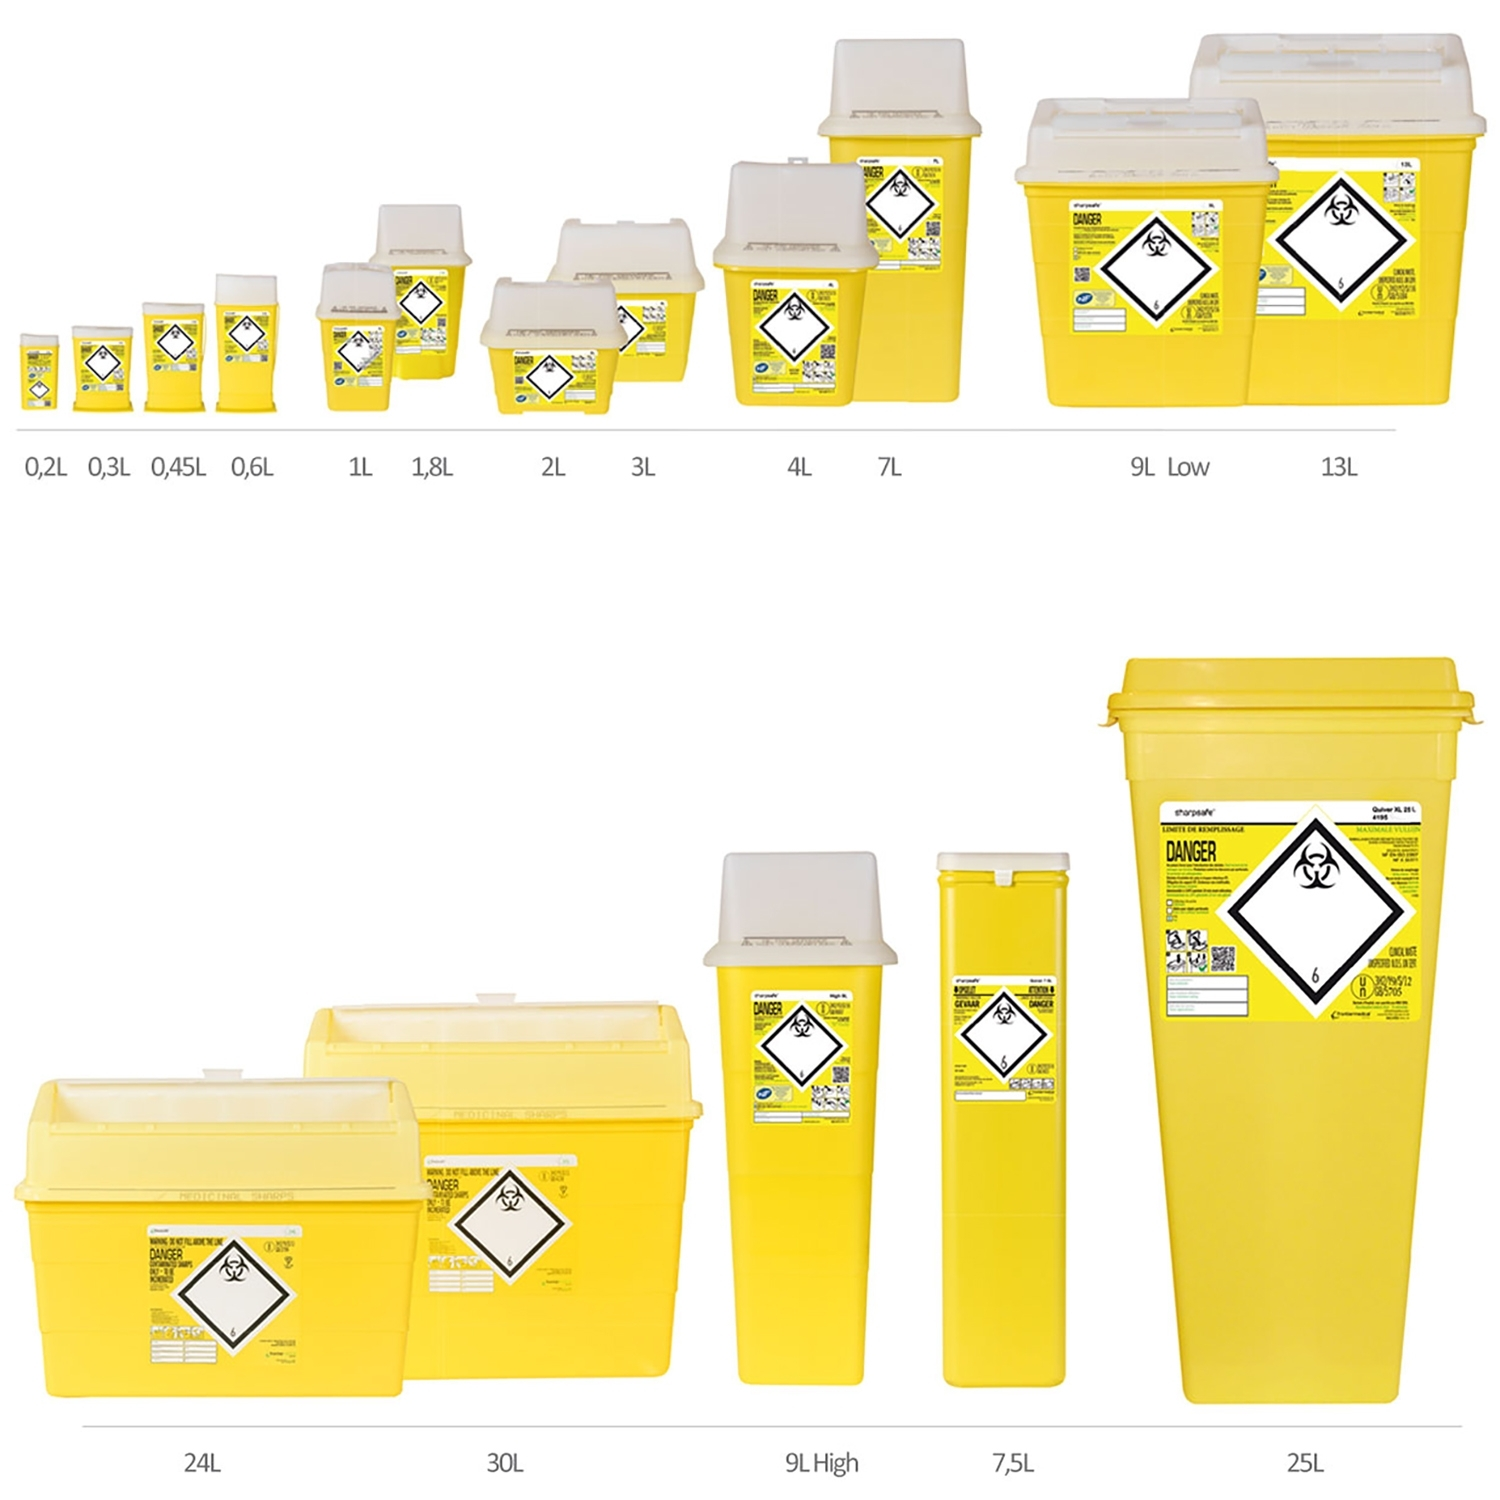 Sharpsafe naaldcontainer